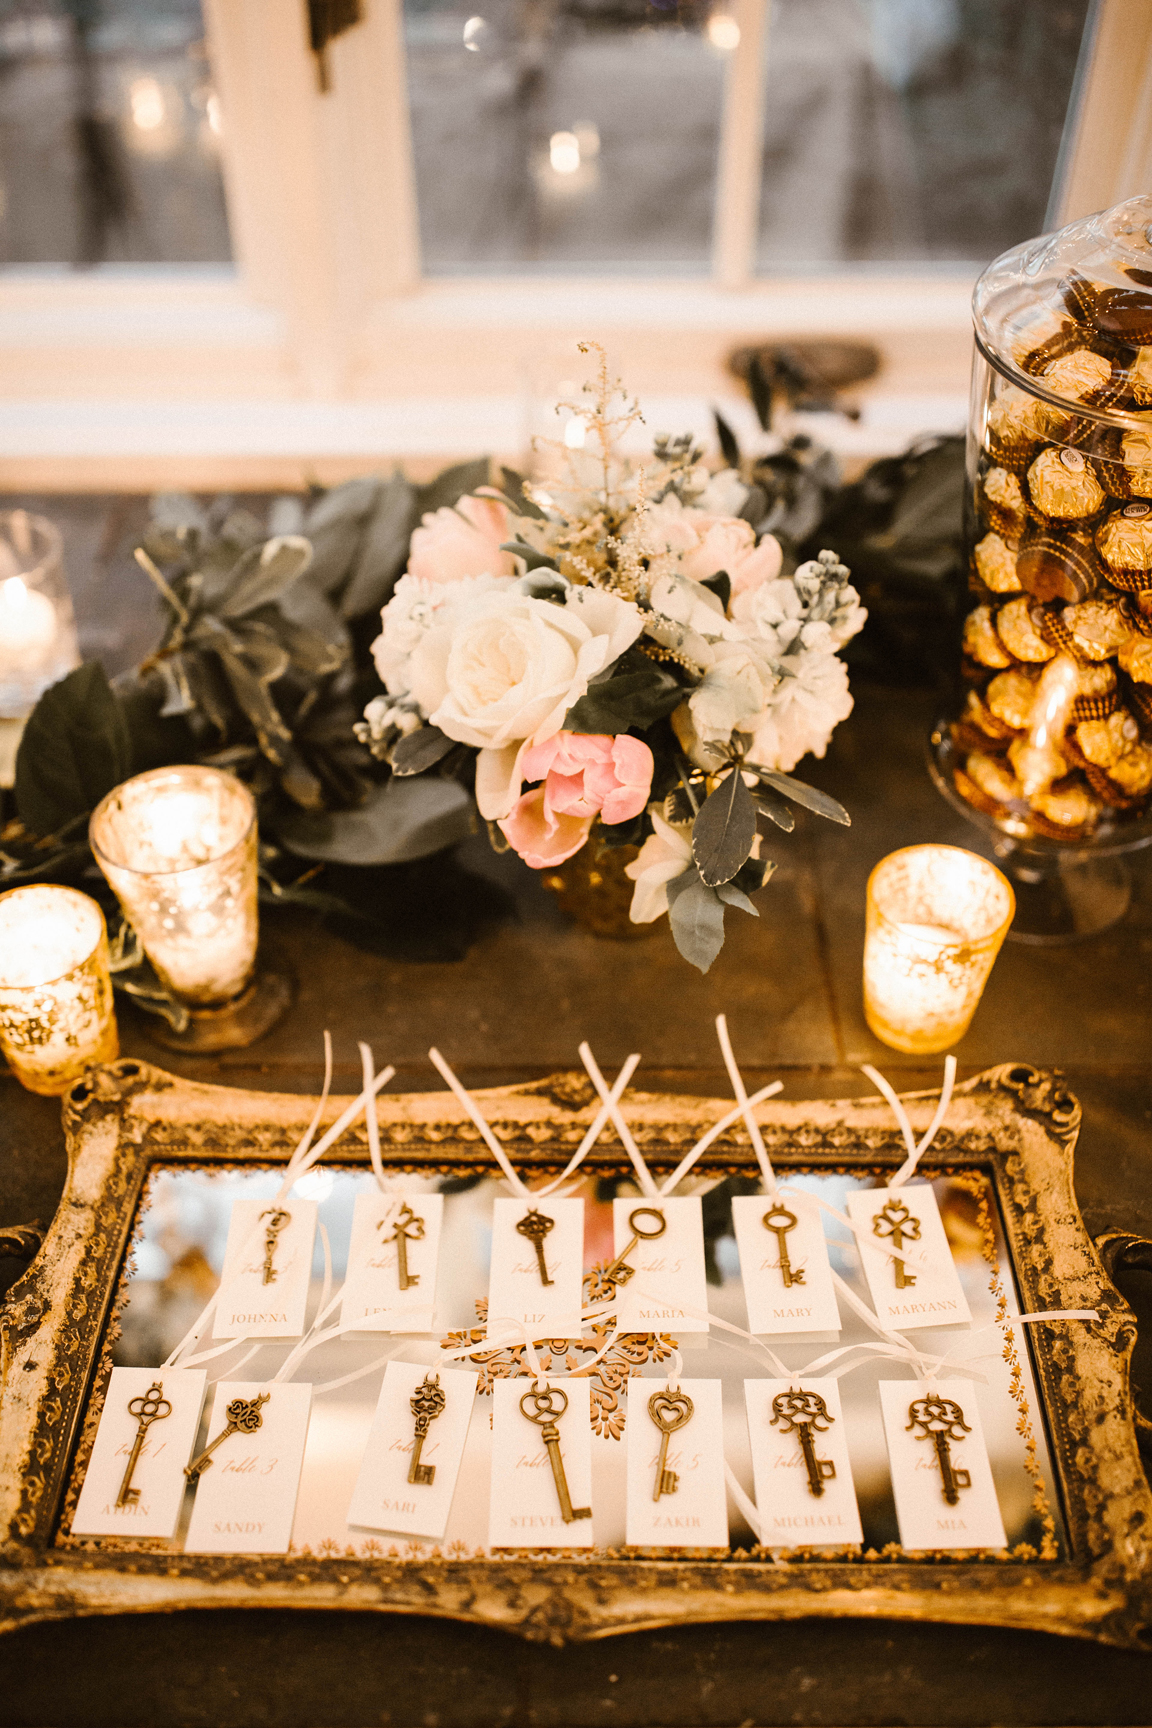 DeLille+Cellars_The+Chateau_Woodinville_2017_Weddings+In+Woodinville96.jpg